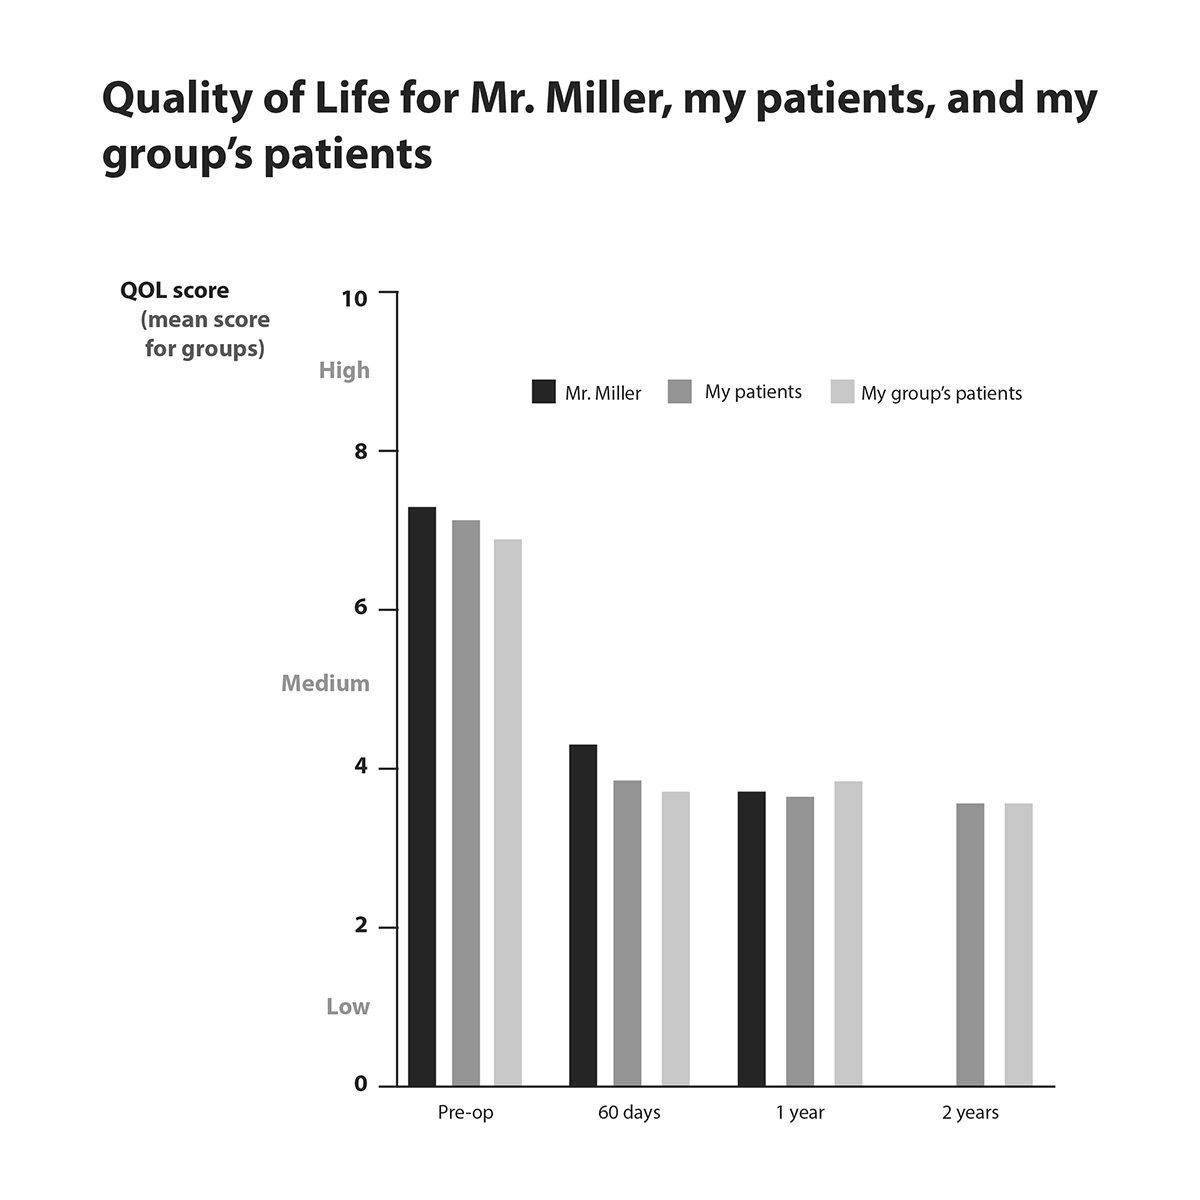 Graph showing comparison of quality of life scores for Mr. Miller, my patients, and my group's patients over time.